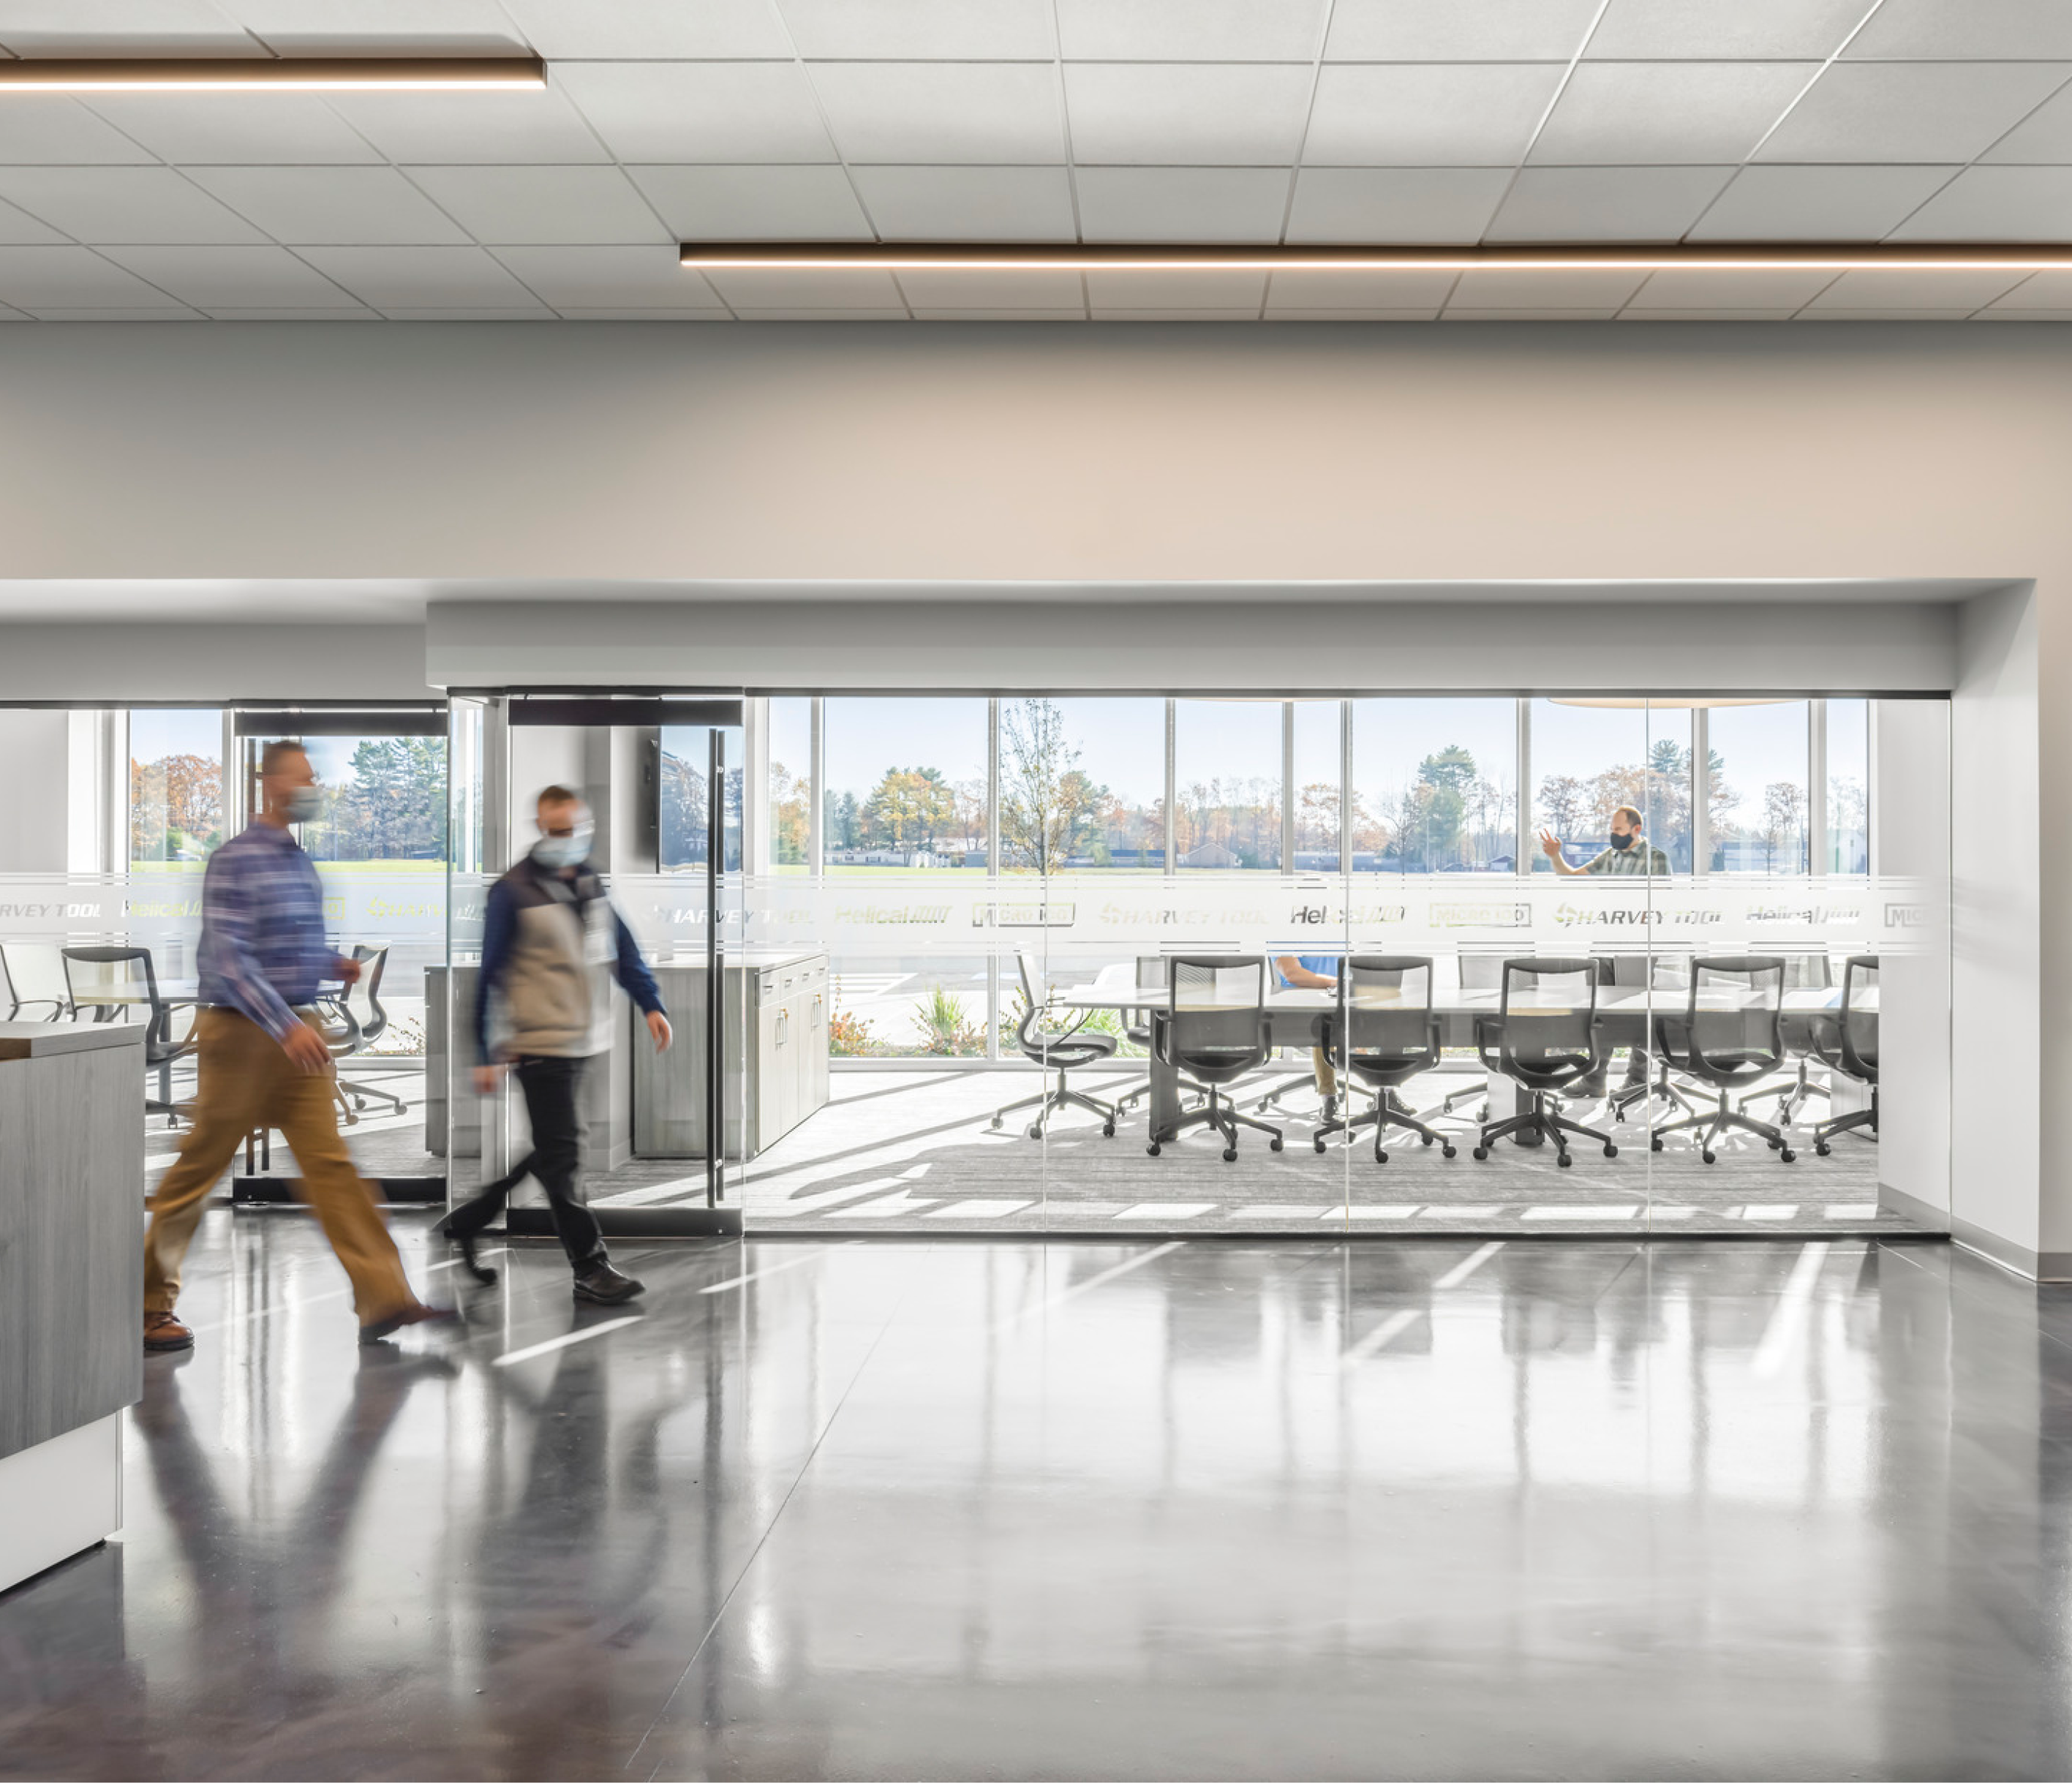 Harvey Performance Company Manufacturing Facility | Lobby and Conference Room | SMMA Design | Masked people walking through lobby